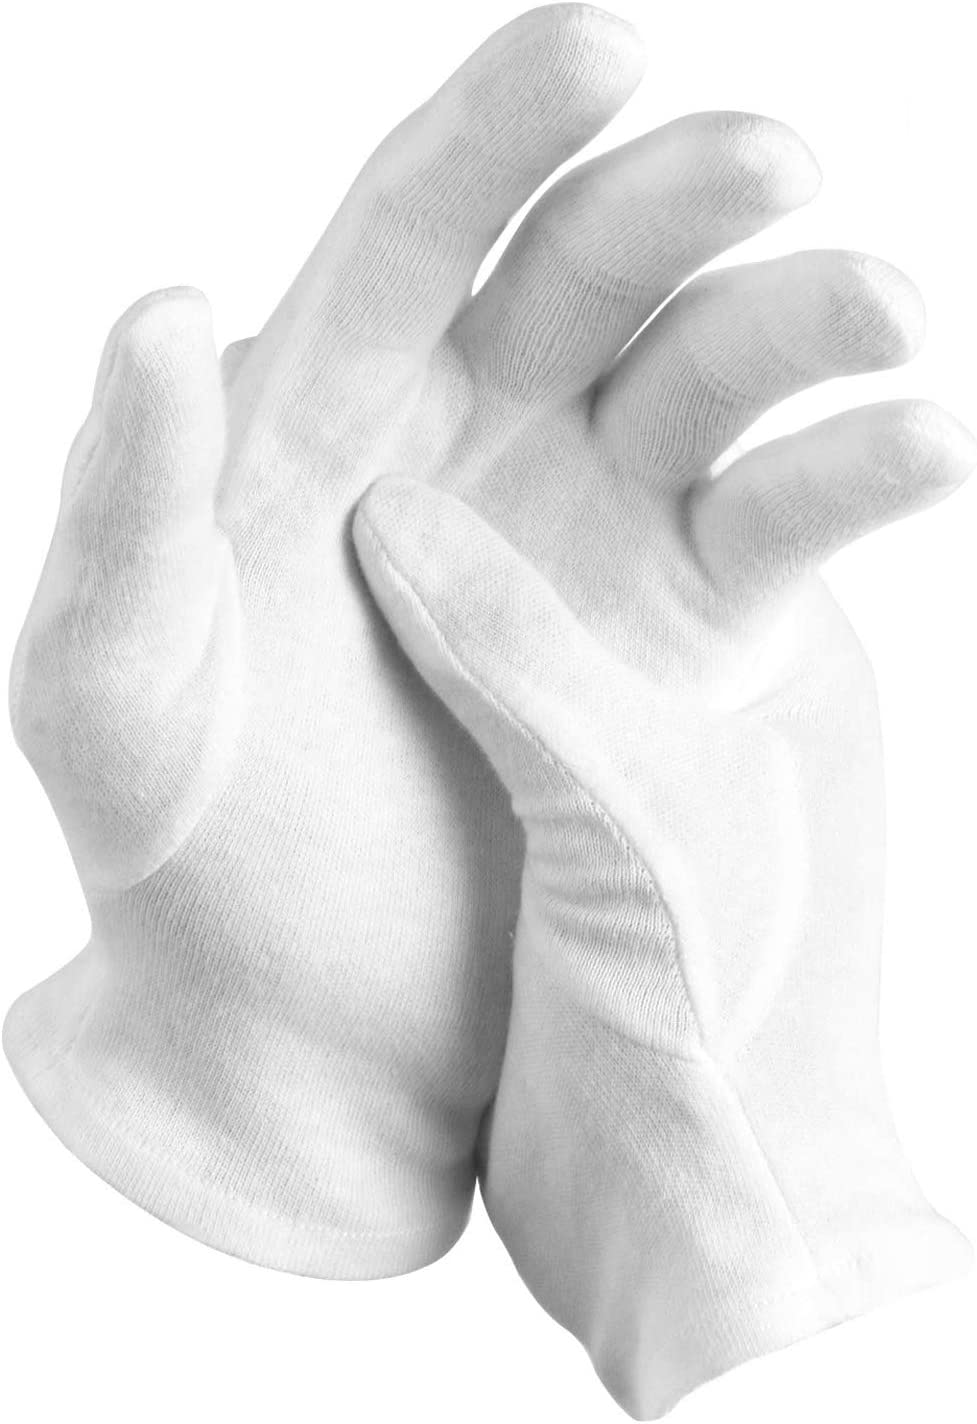 12 Pairs White Cotton Ranking TOP18 Gloves Inspectio Hands SPA Our shop most popular Dry for